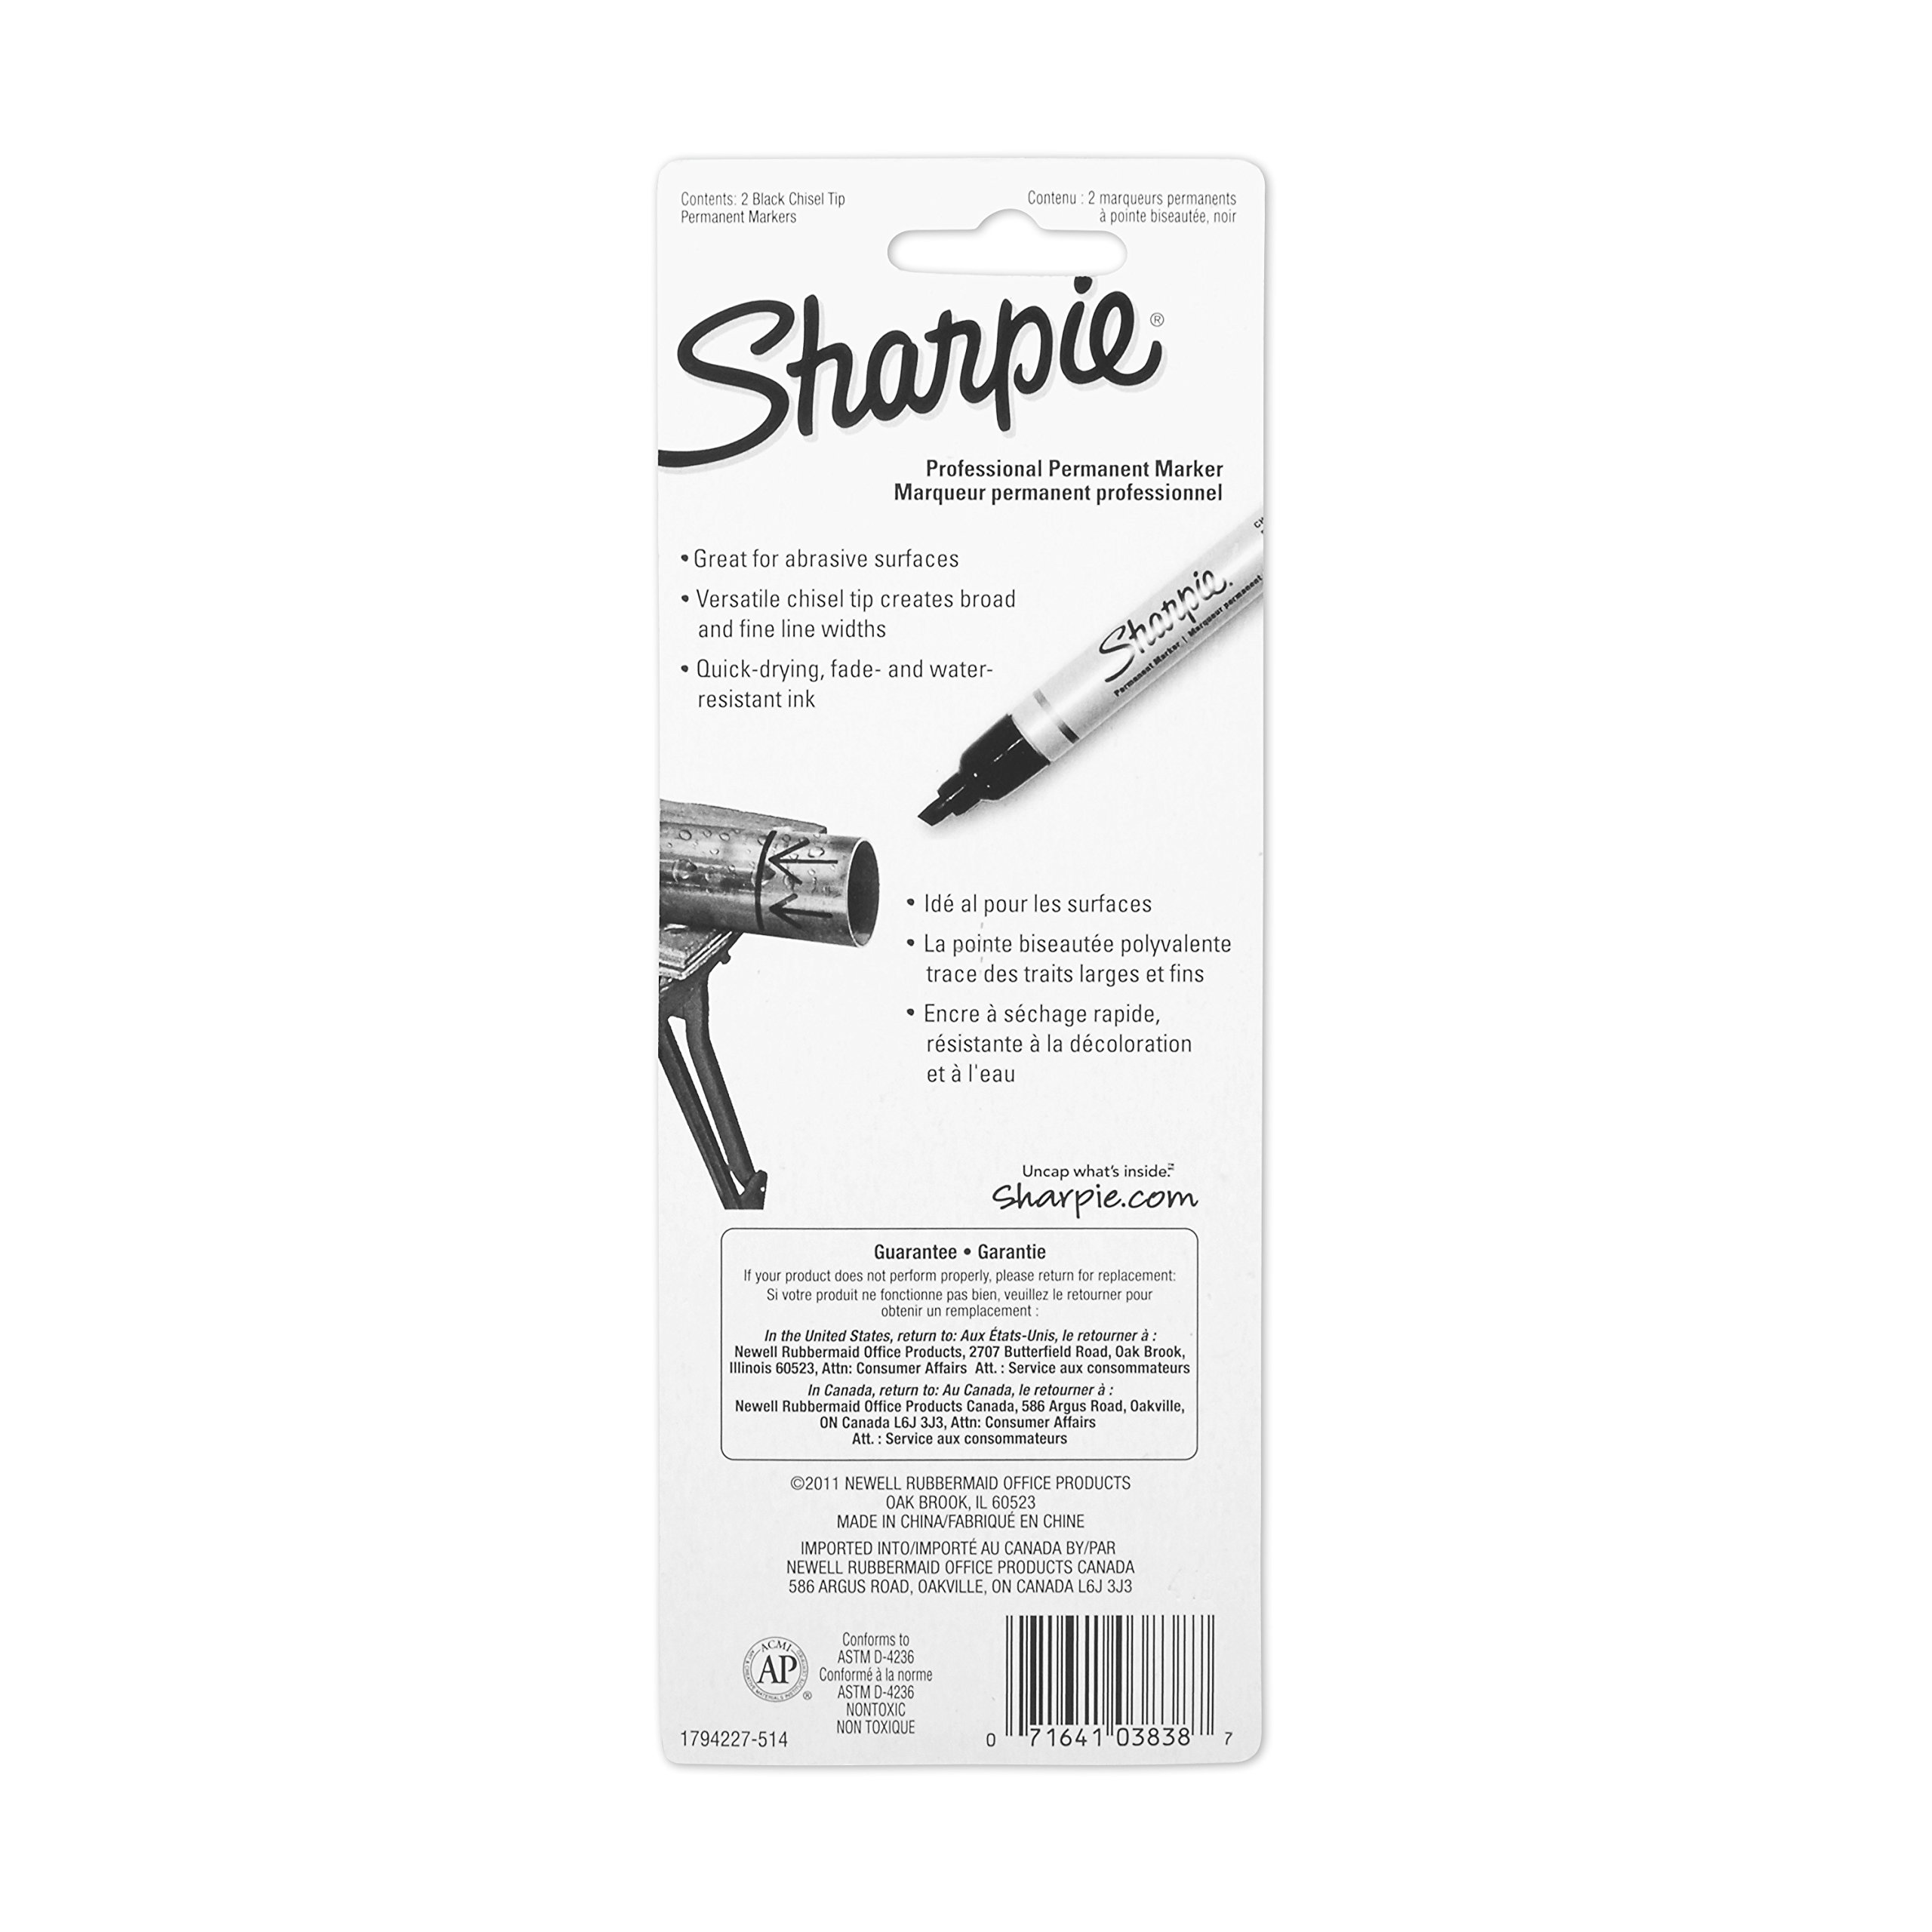 Sharpie Pro Chisel Tip Industrial Strength Permanent Marker, 2 Black Markers by Sharpie (Image #4)